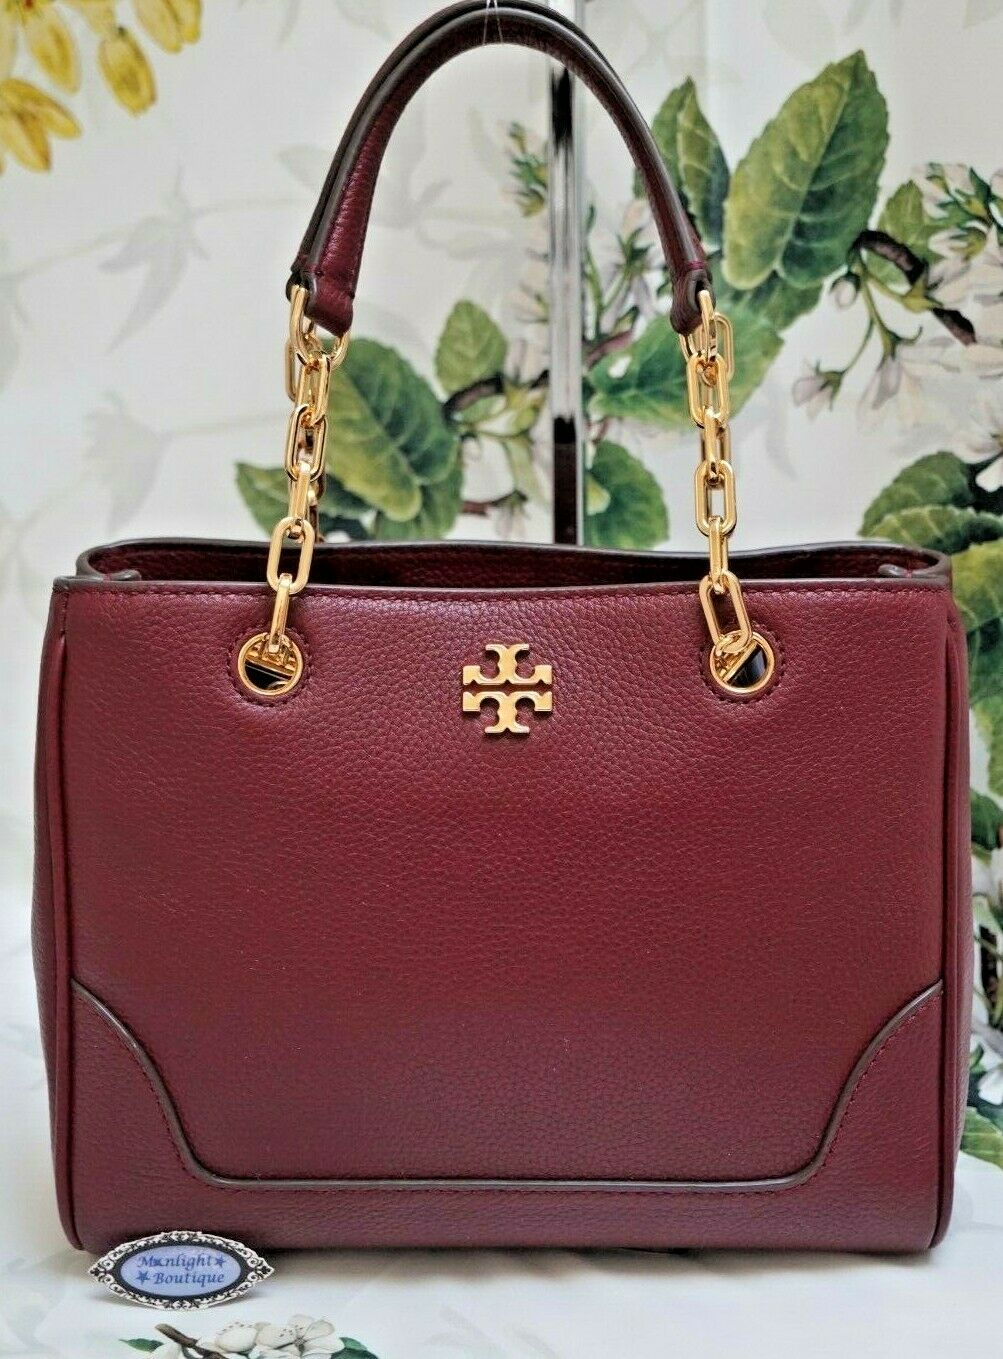 NWT TORY BURCH CARTER SMALL Chain Shoulder Tote Bag In IMPERIAL GARNET Leather